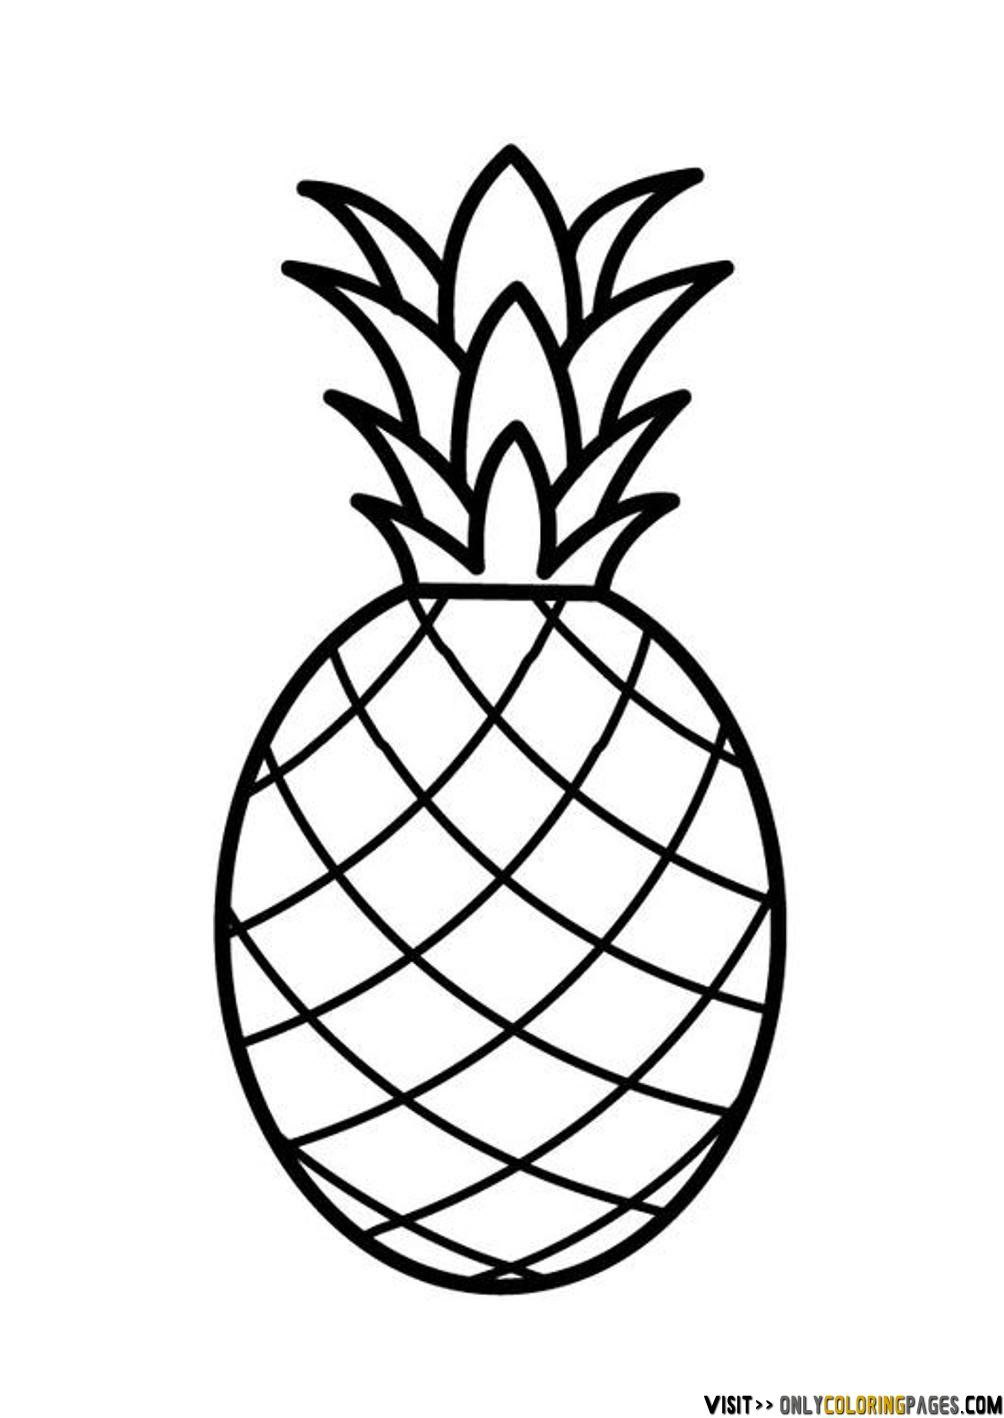 Pineapple Coloring Page Only Coloring Pages Youth Jewelry Images